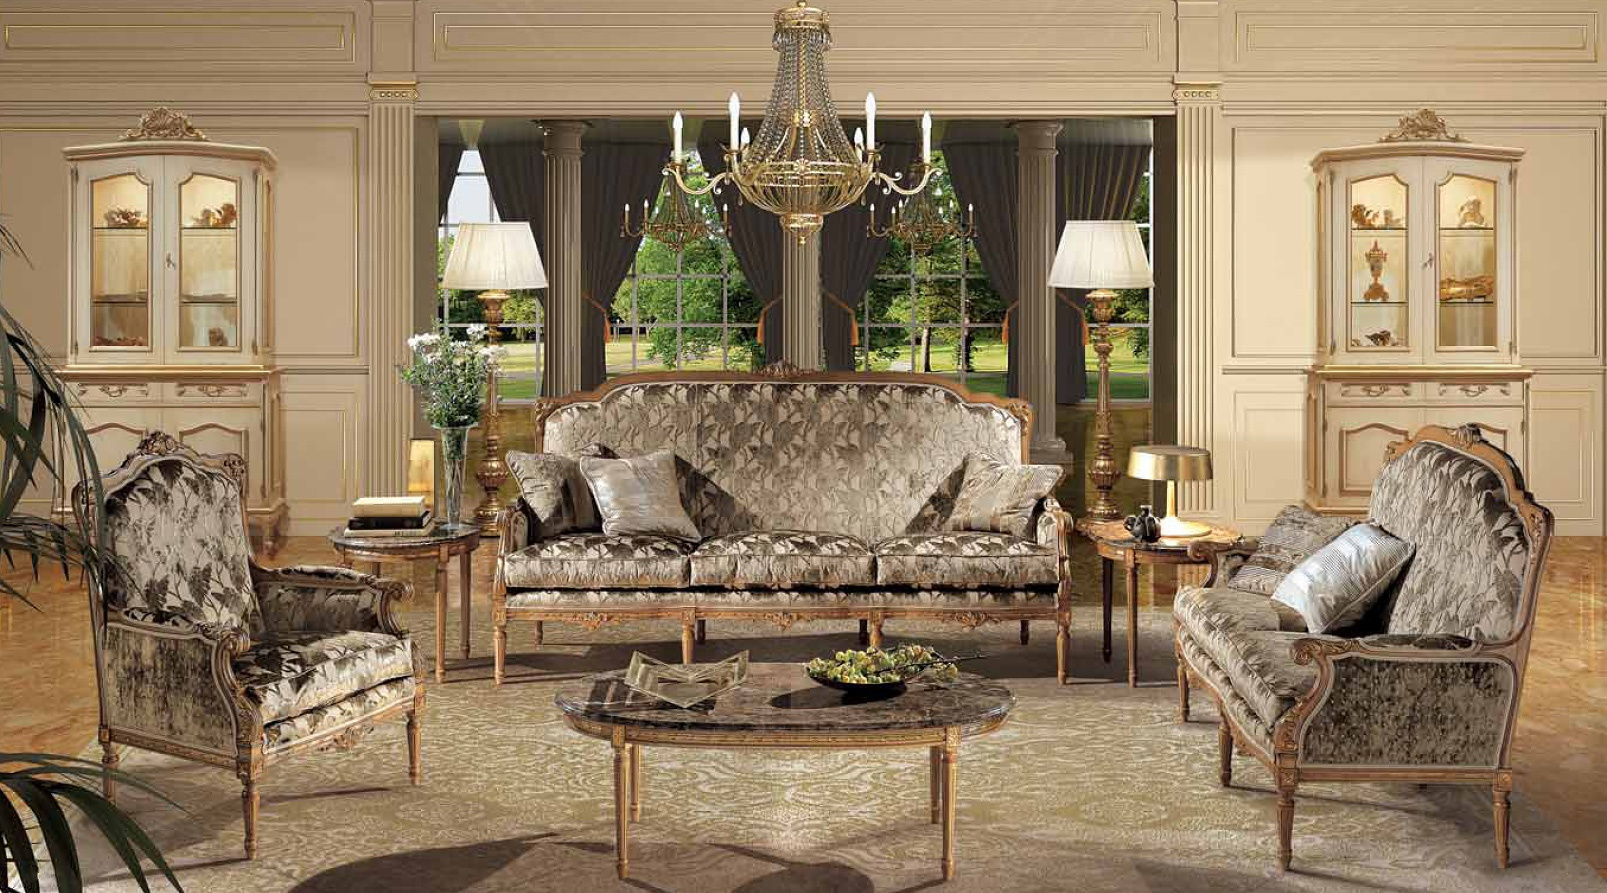 Living room sofa set monti angelo cappellini luxury for Italienische couch